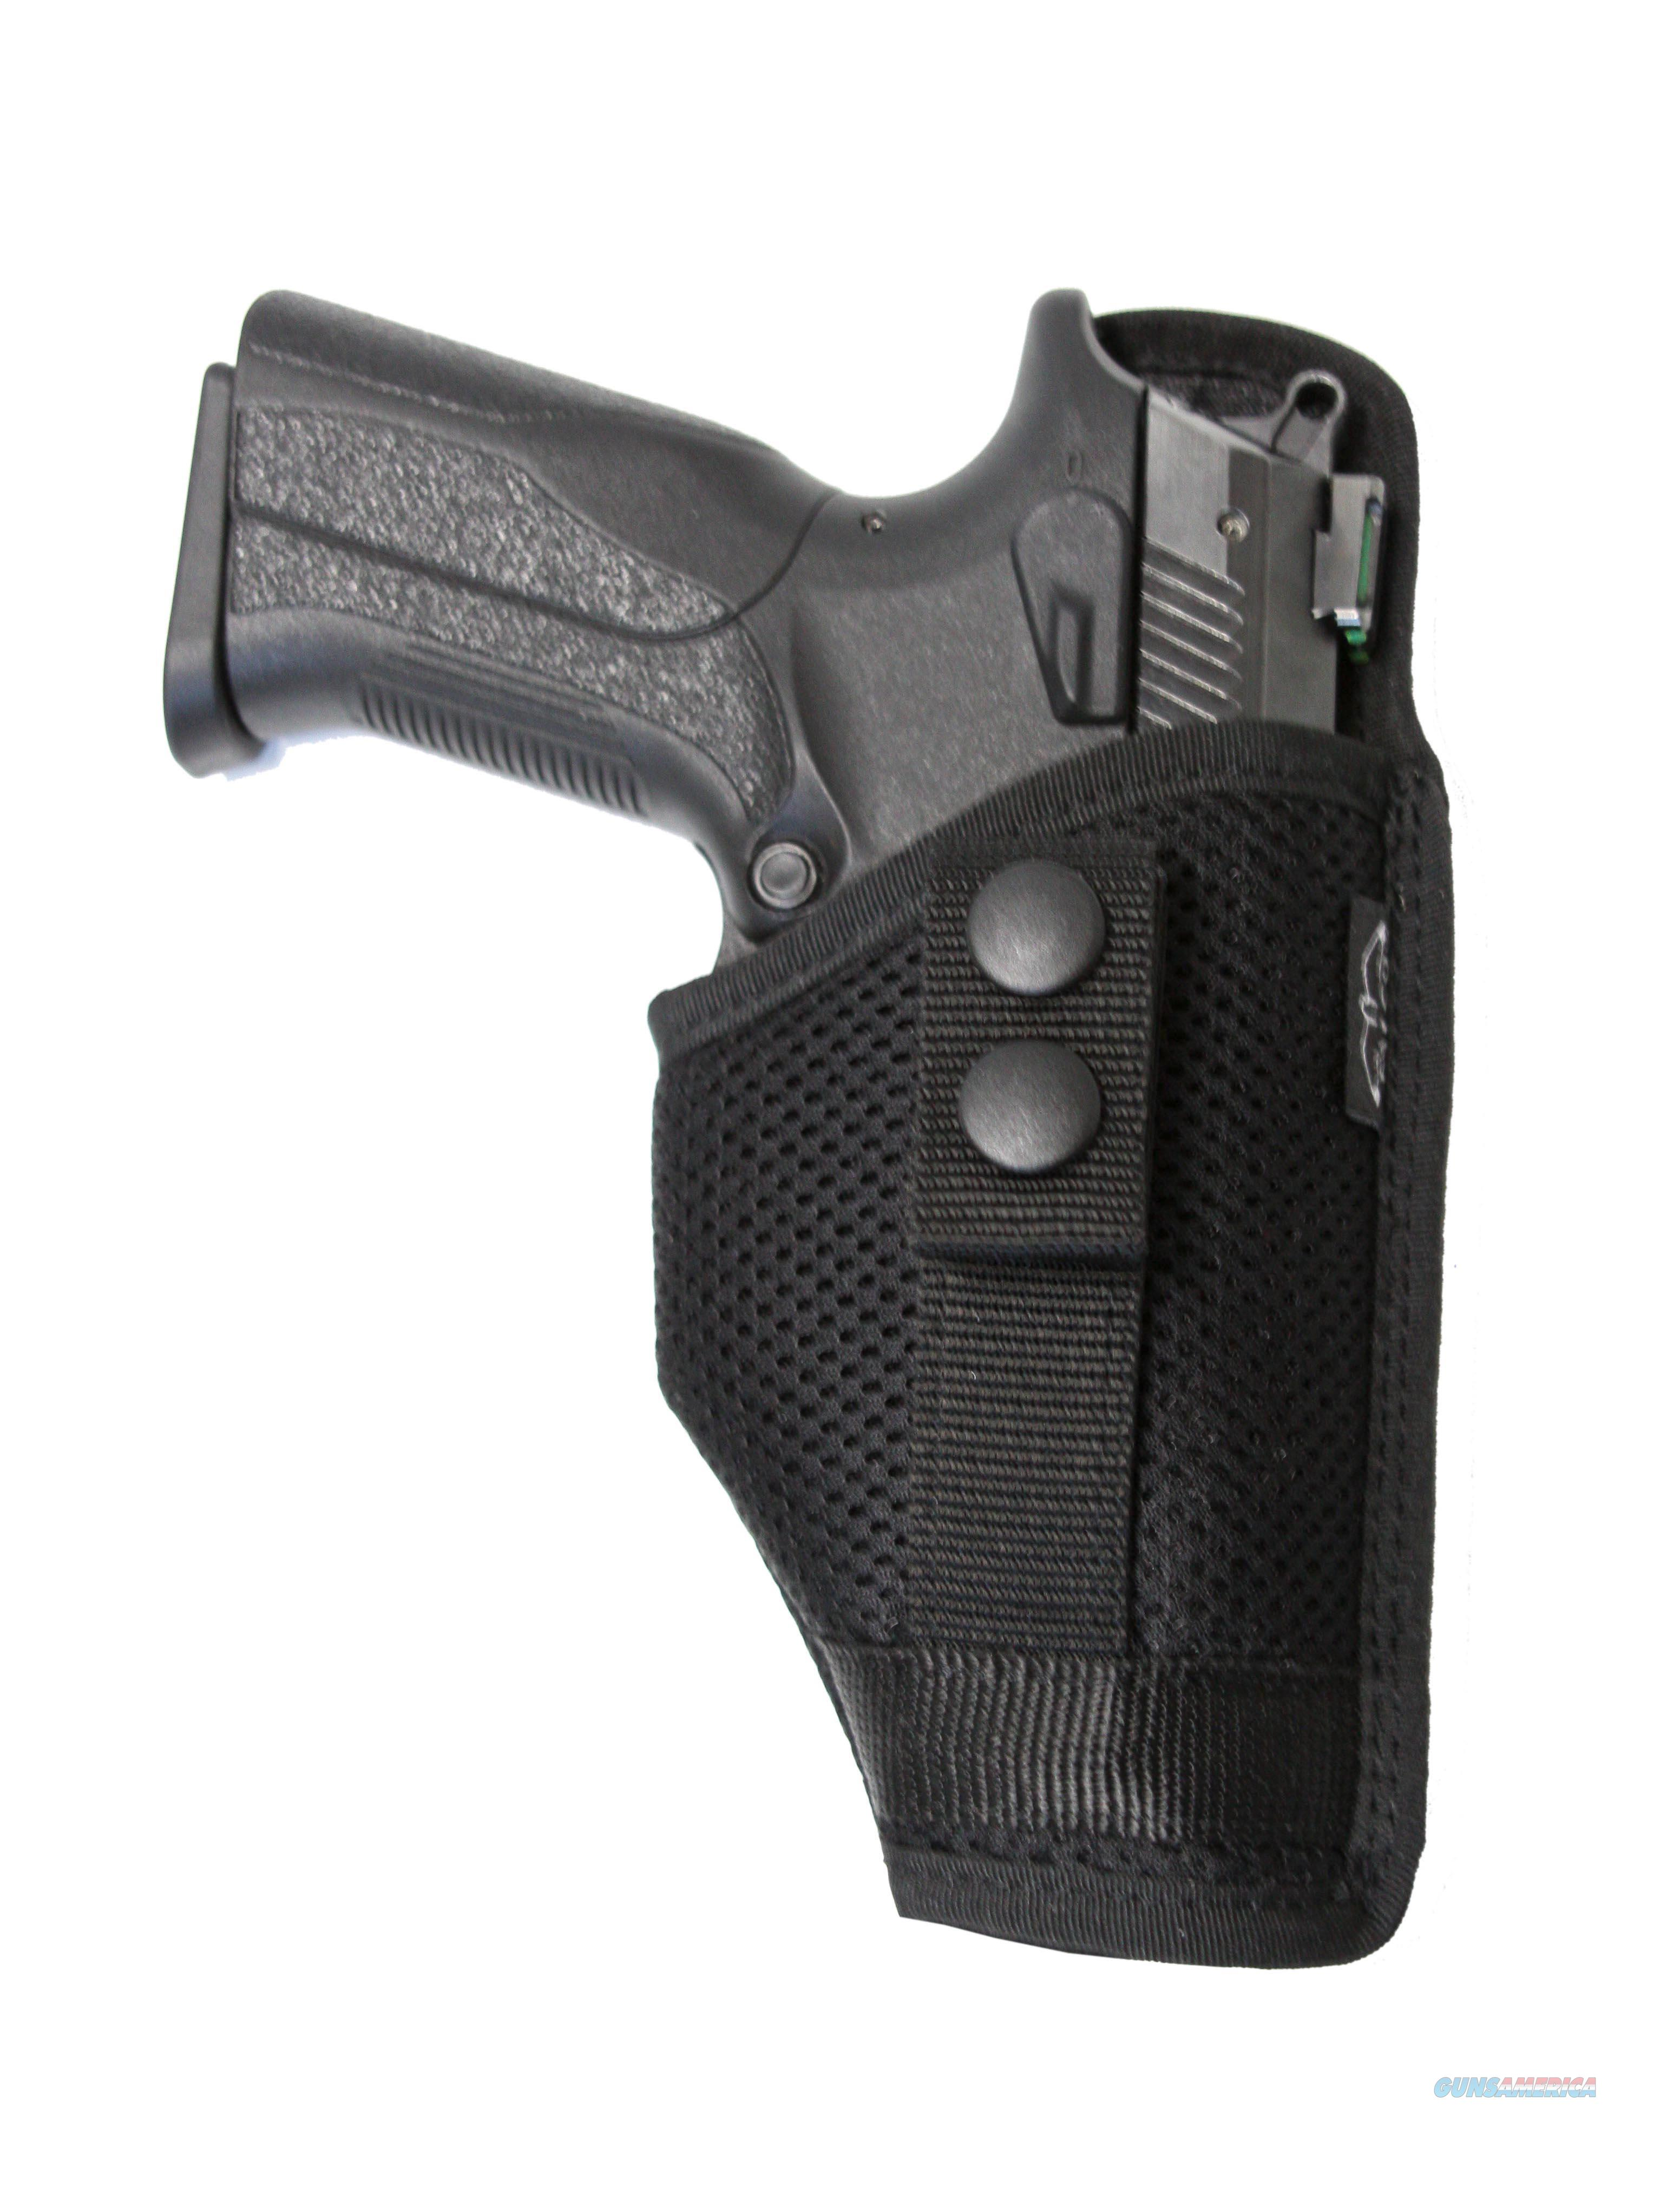 IWB Tuckable Holster for Concealed Gun Carry Heckler & Koch USP 9mm  Non-Guns > Holsters and Gunleather > Concealed Carry